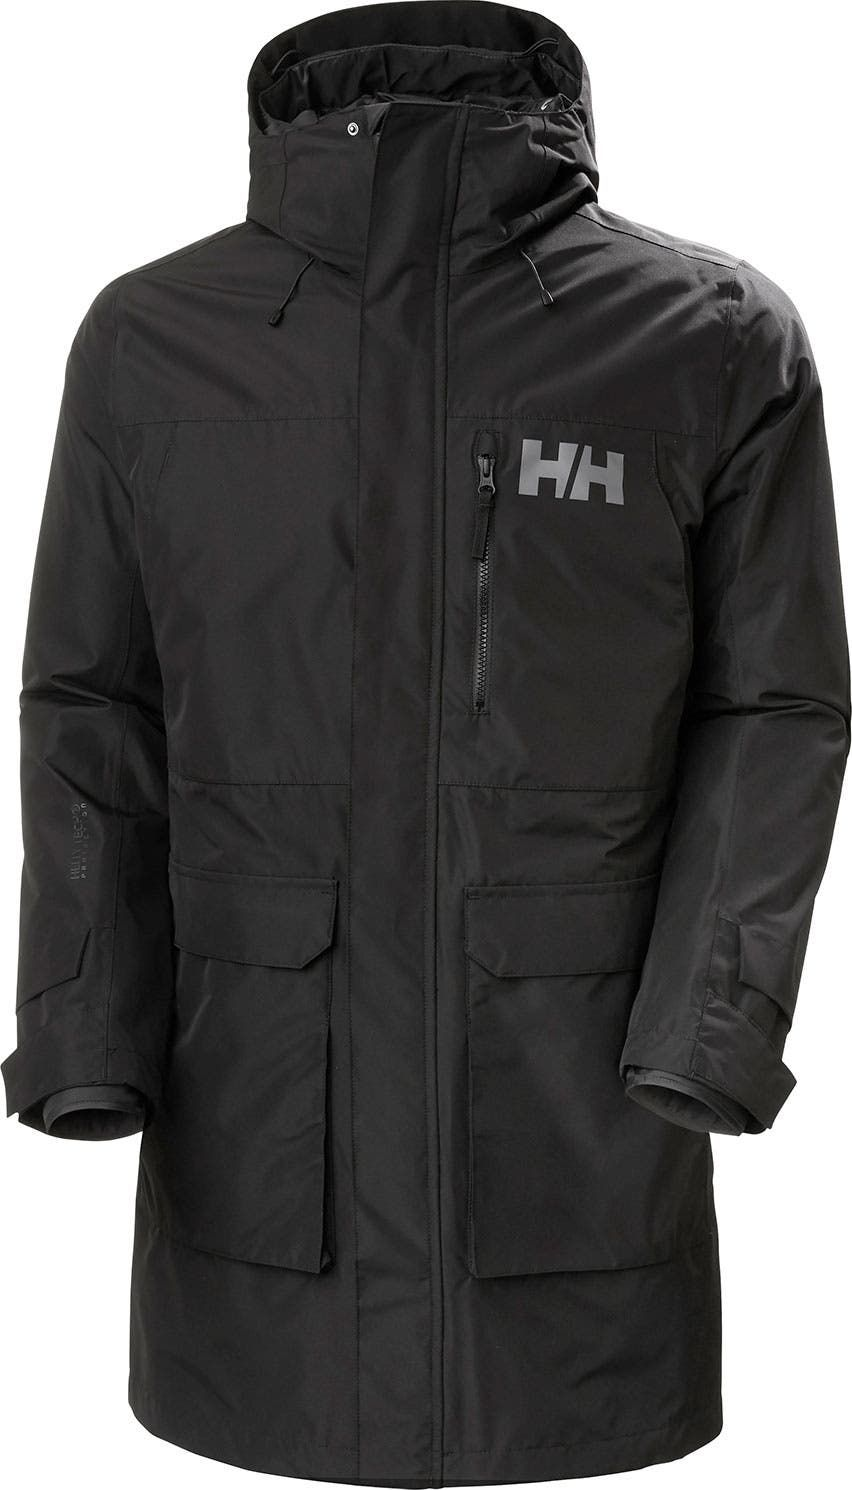 HELLY HANSEN Rigging Coat Men's Black M